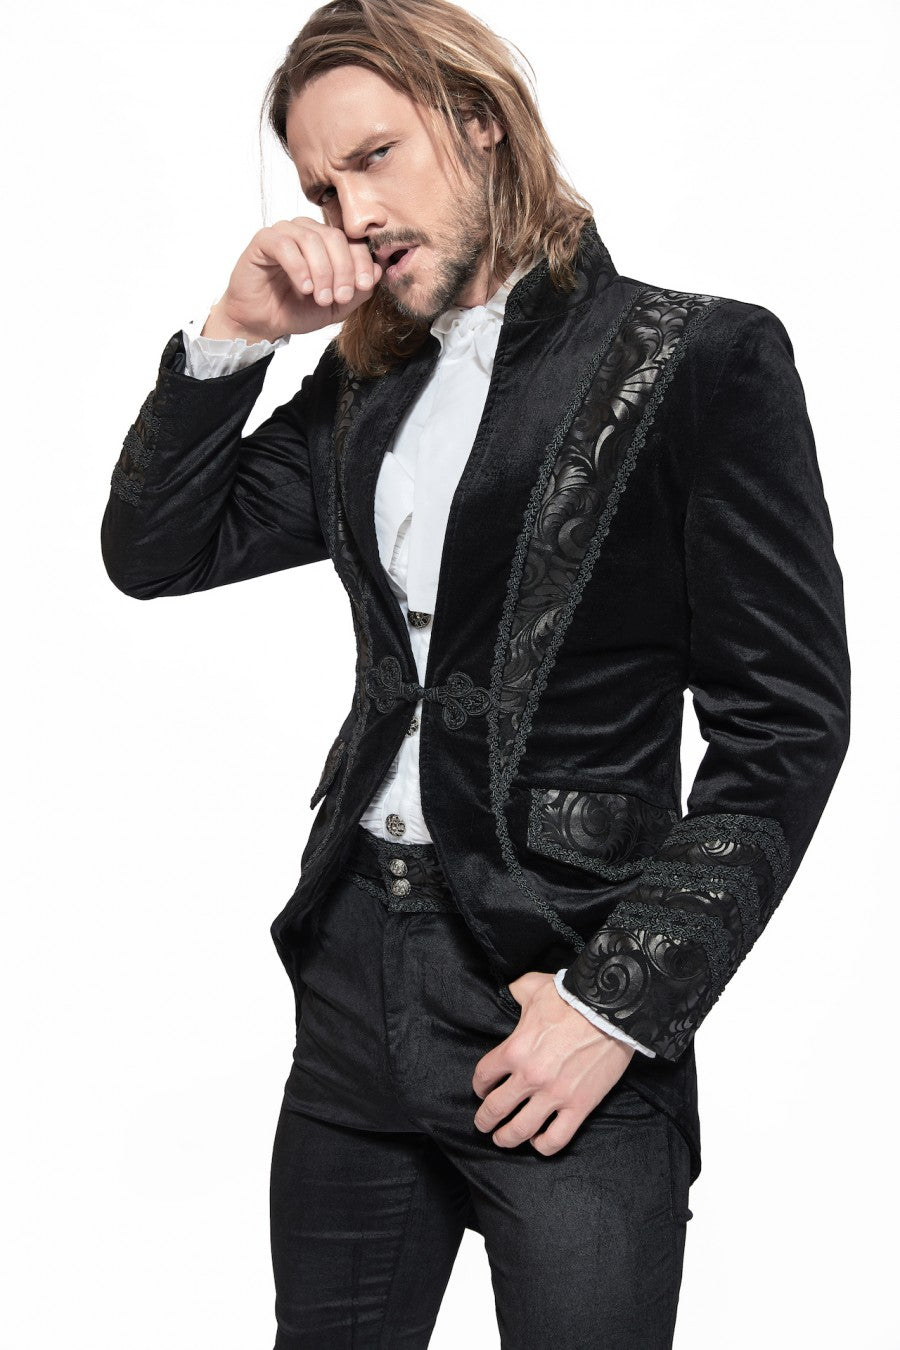 Pentagramme Men's Black Velvet and Faux Leather Gothic Swallowtail Jacket